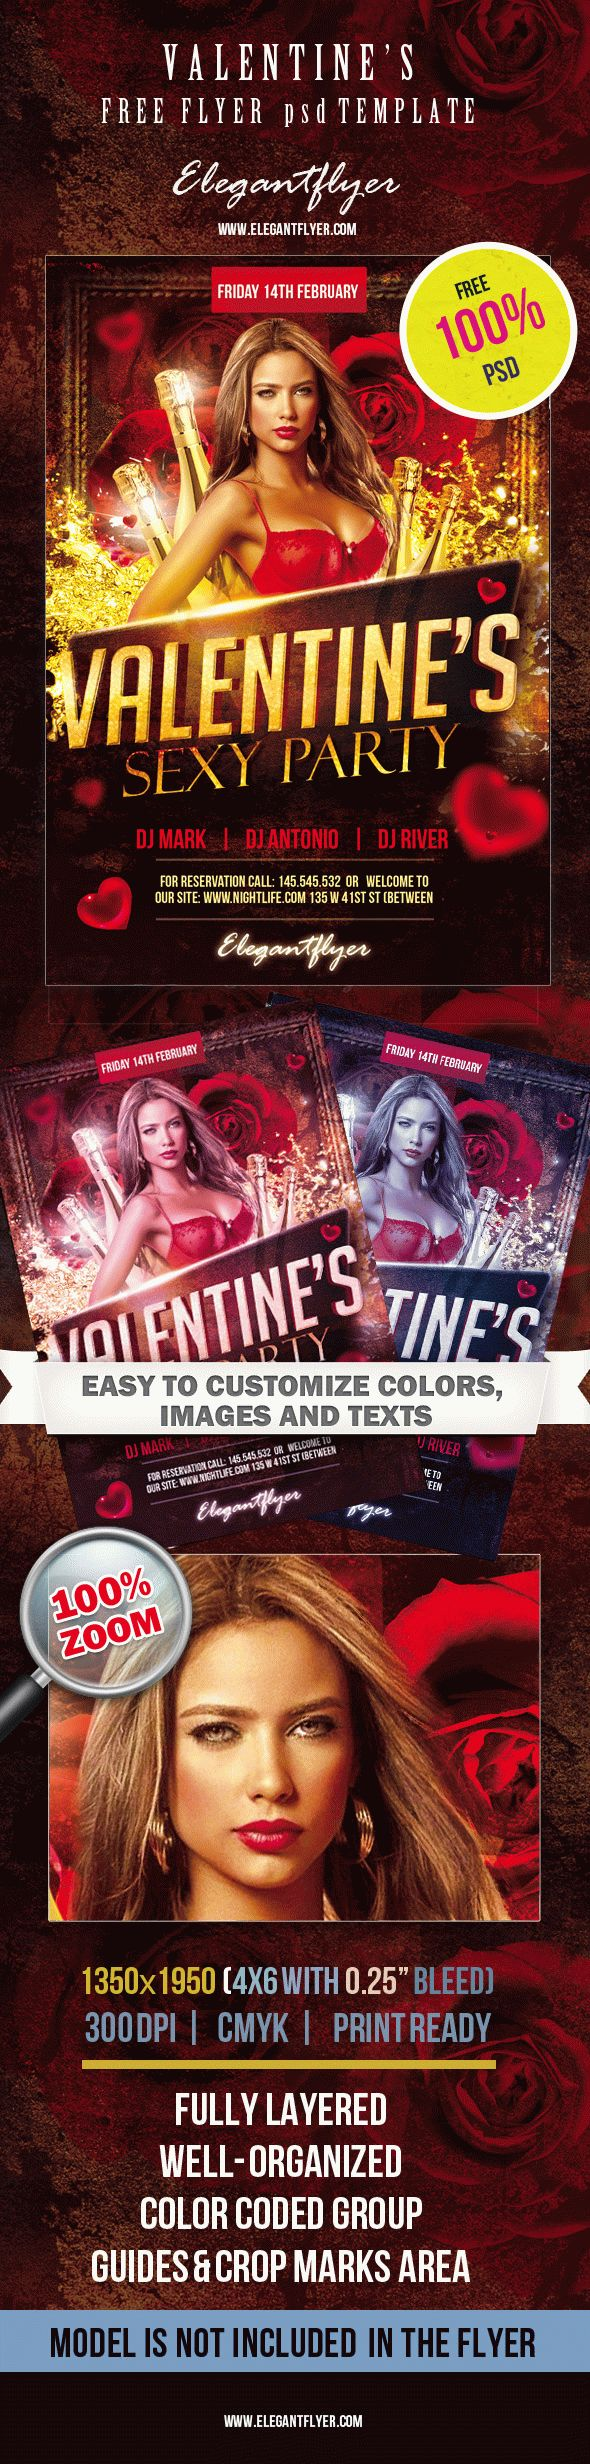 Free Flyer PSD Template – Valentine's sexy party